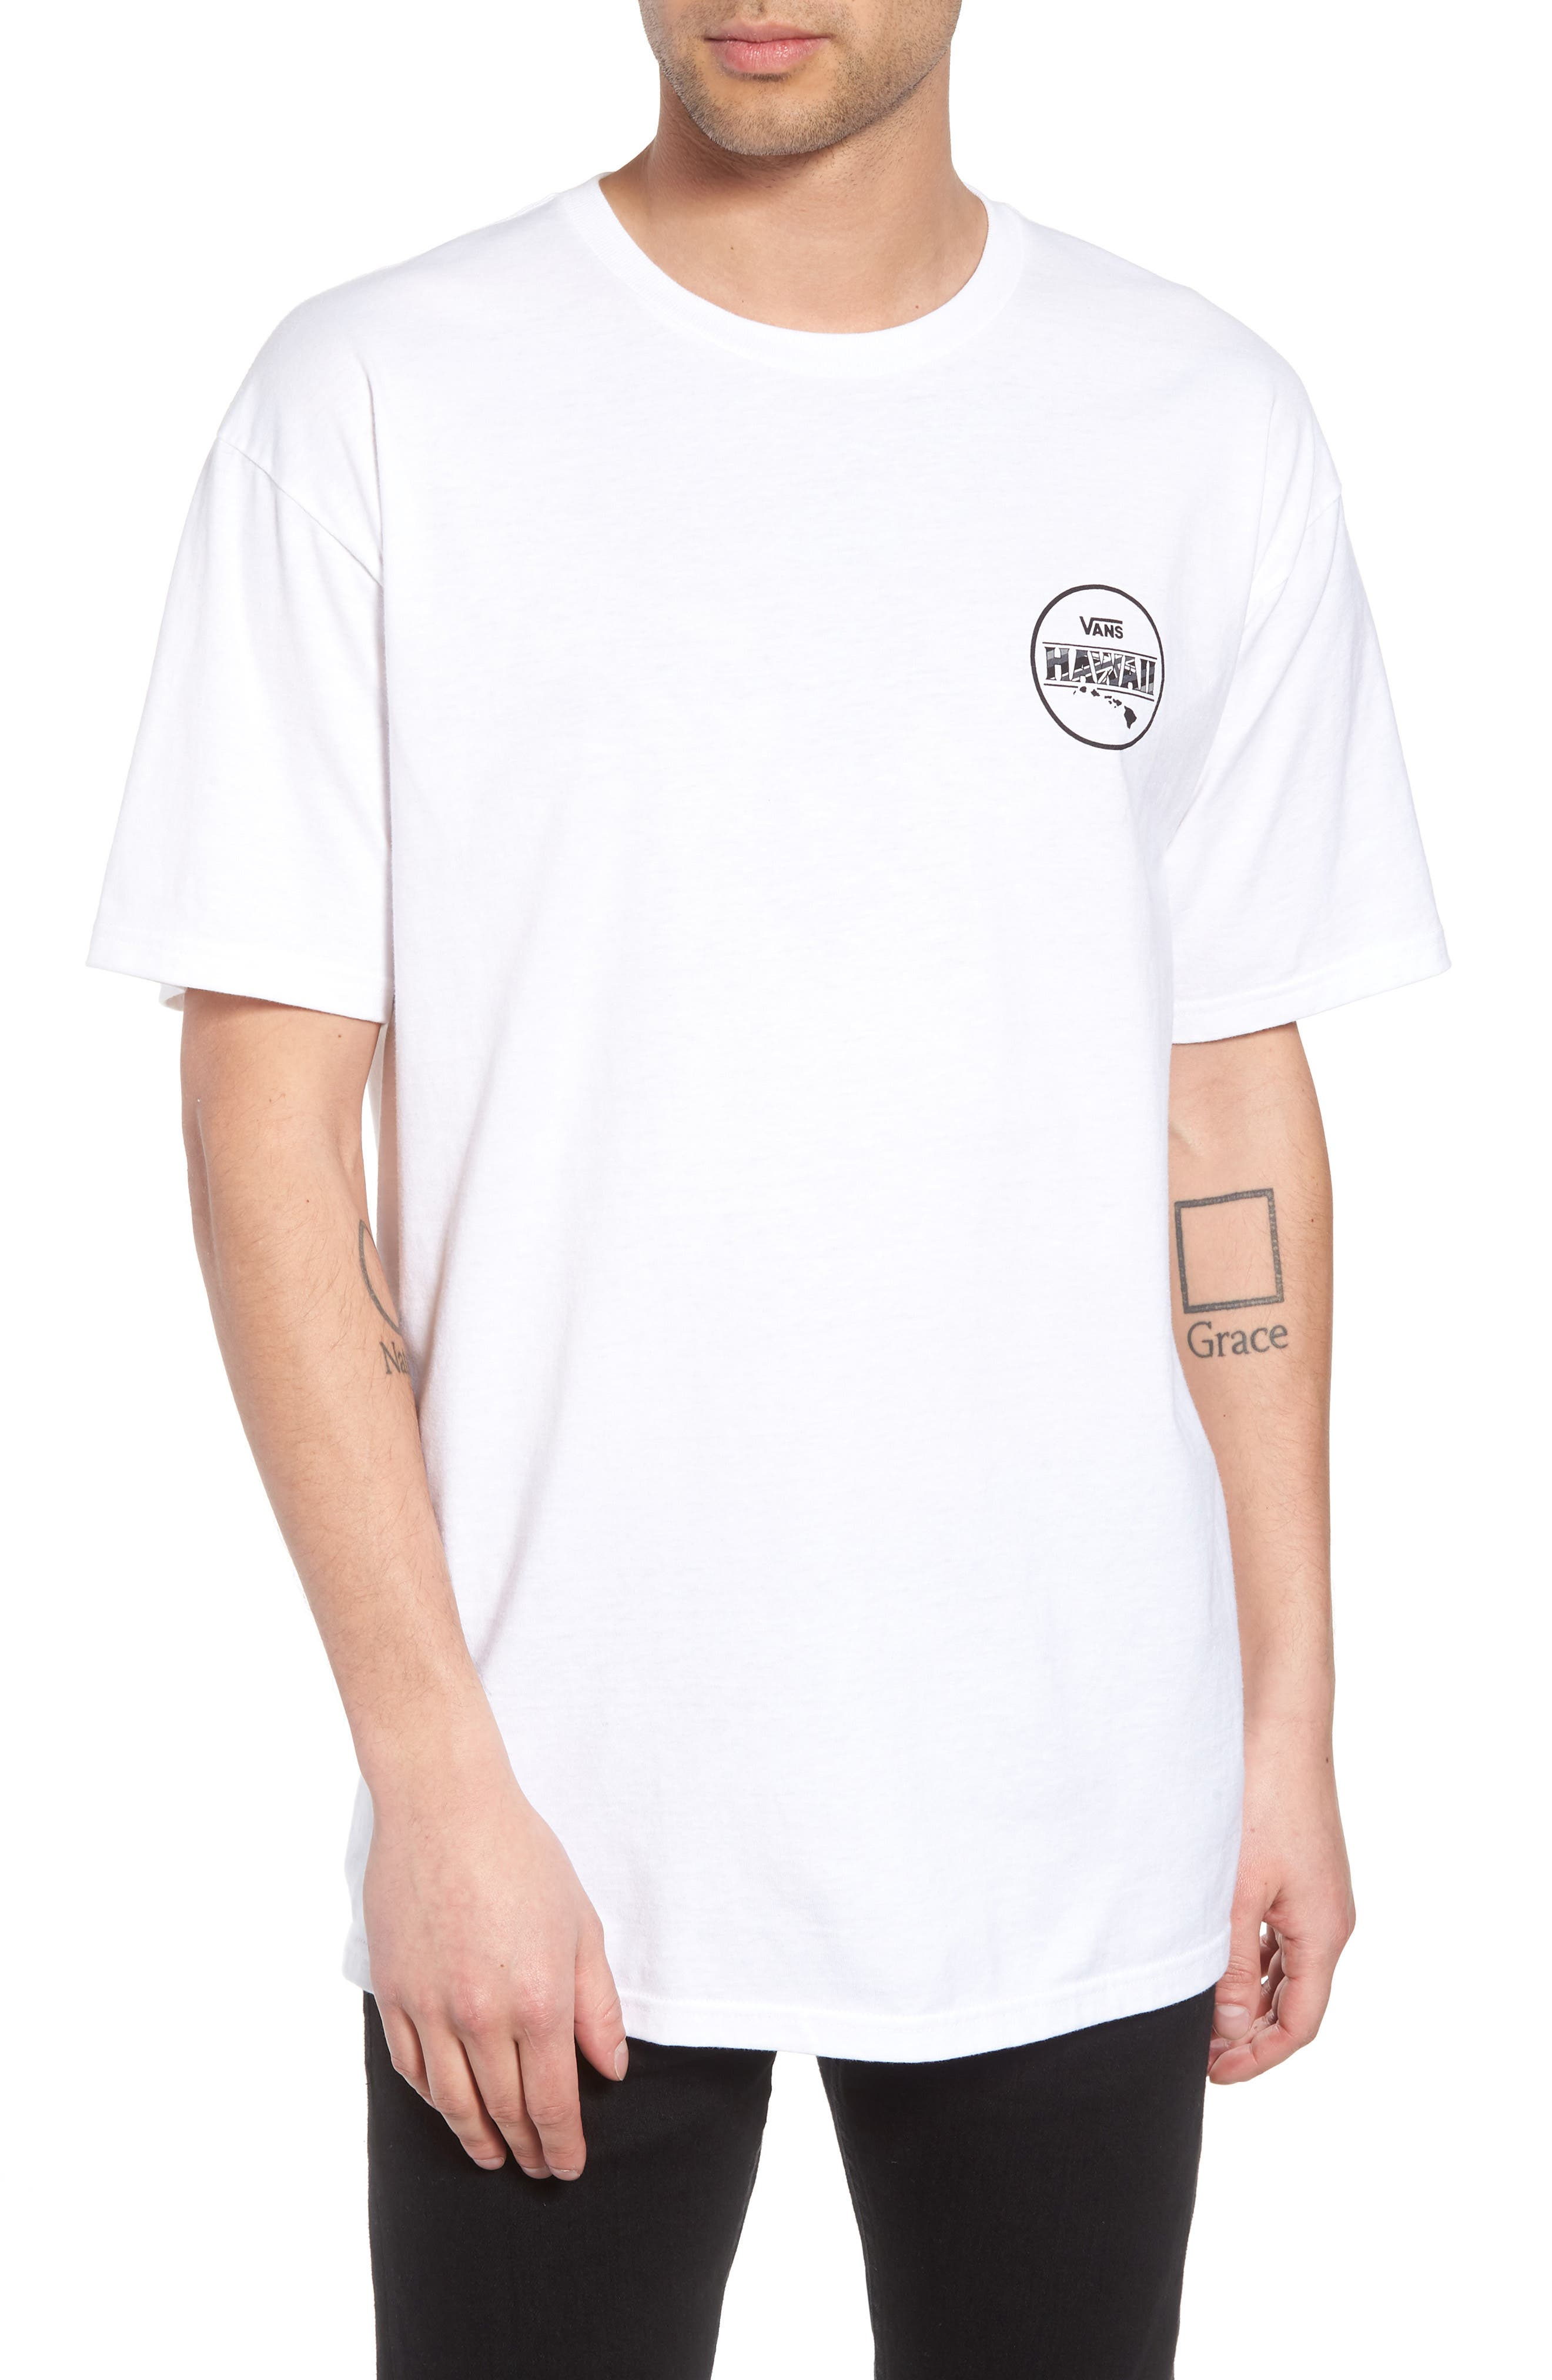 Makai Fill II T-Shirt,                         Main,                         color, White/ Hi Flyin